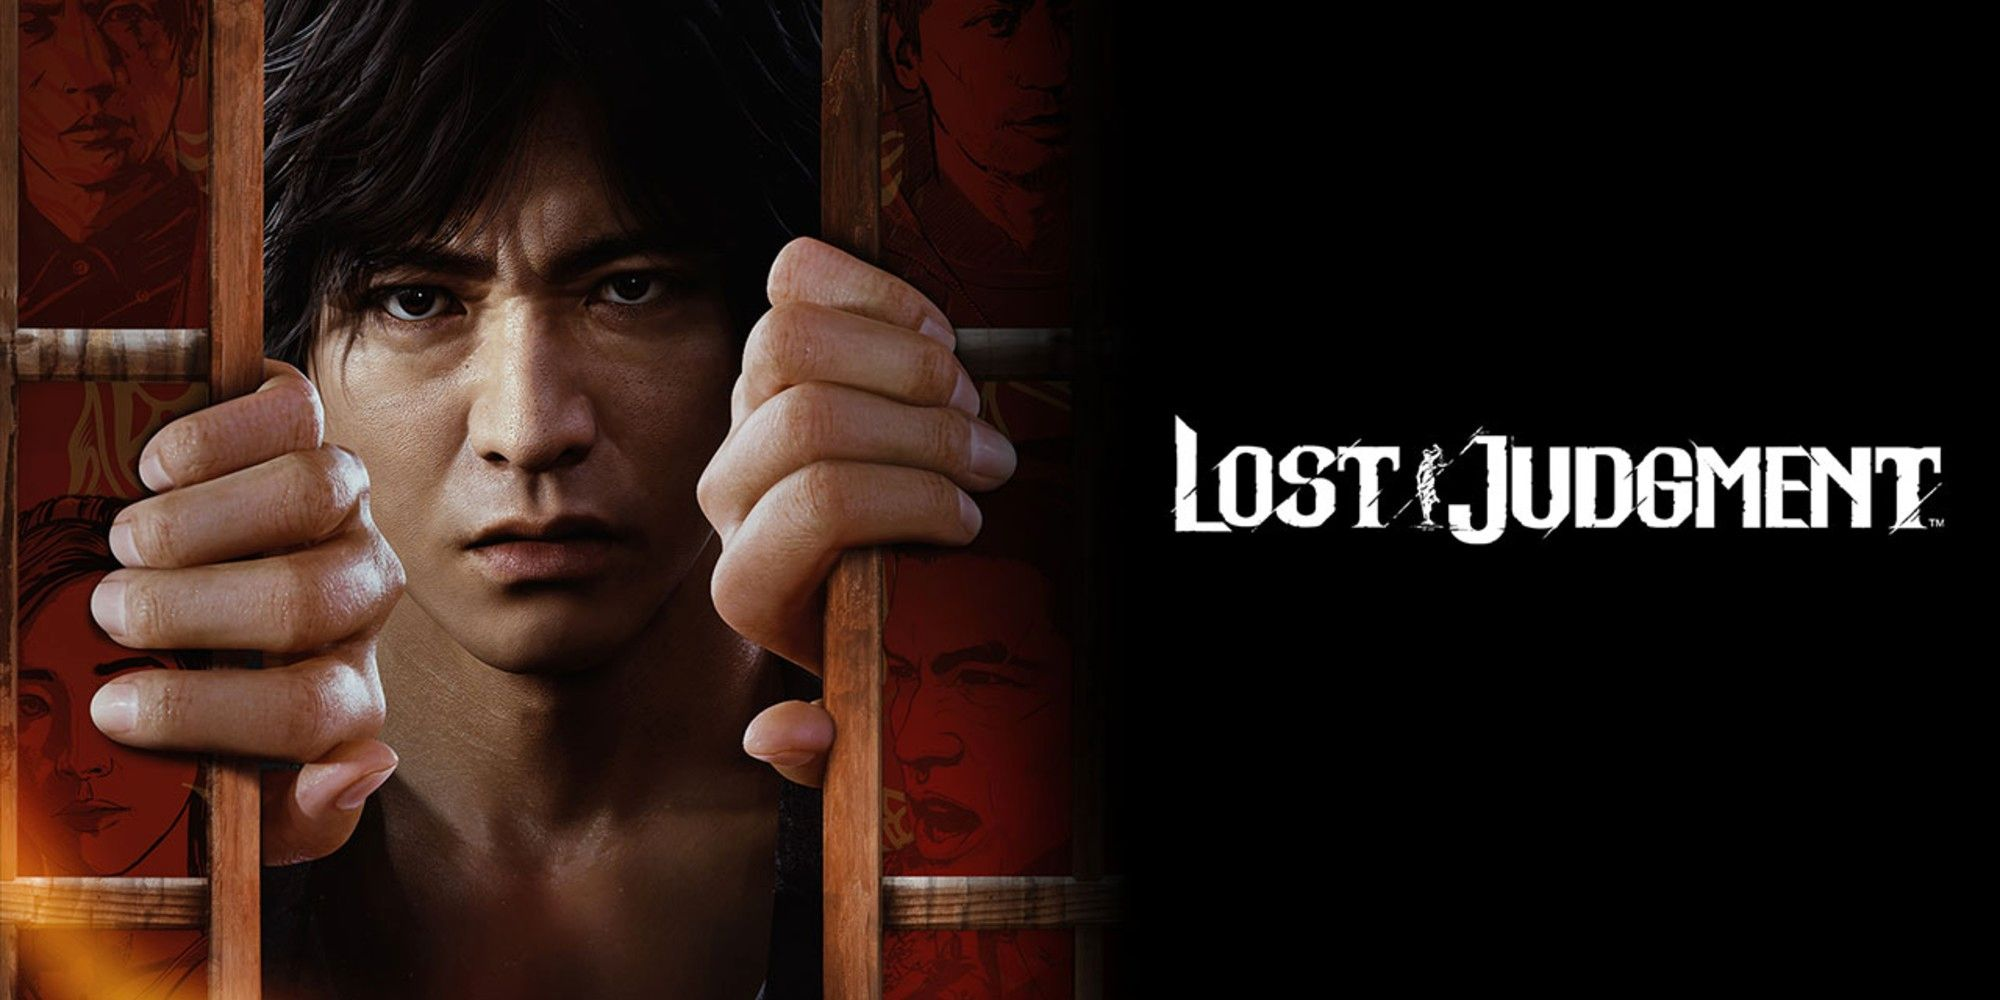 Lost Judgment | All collectibles: free pass vouchers, skateboards, darts, bats and Sega games